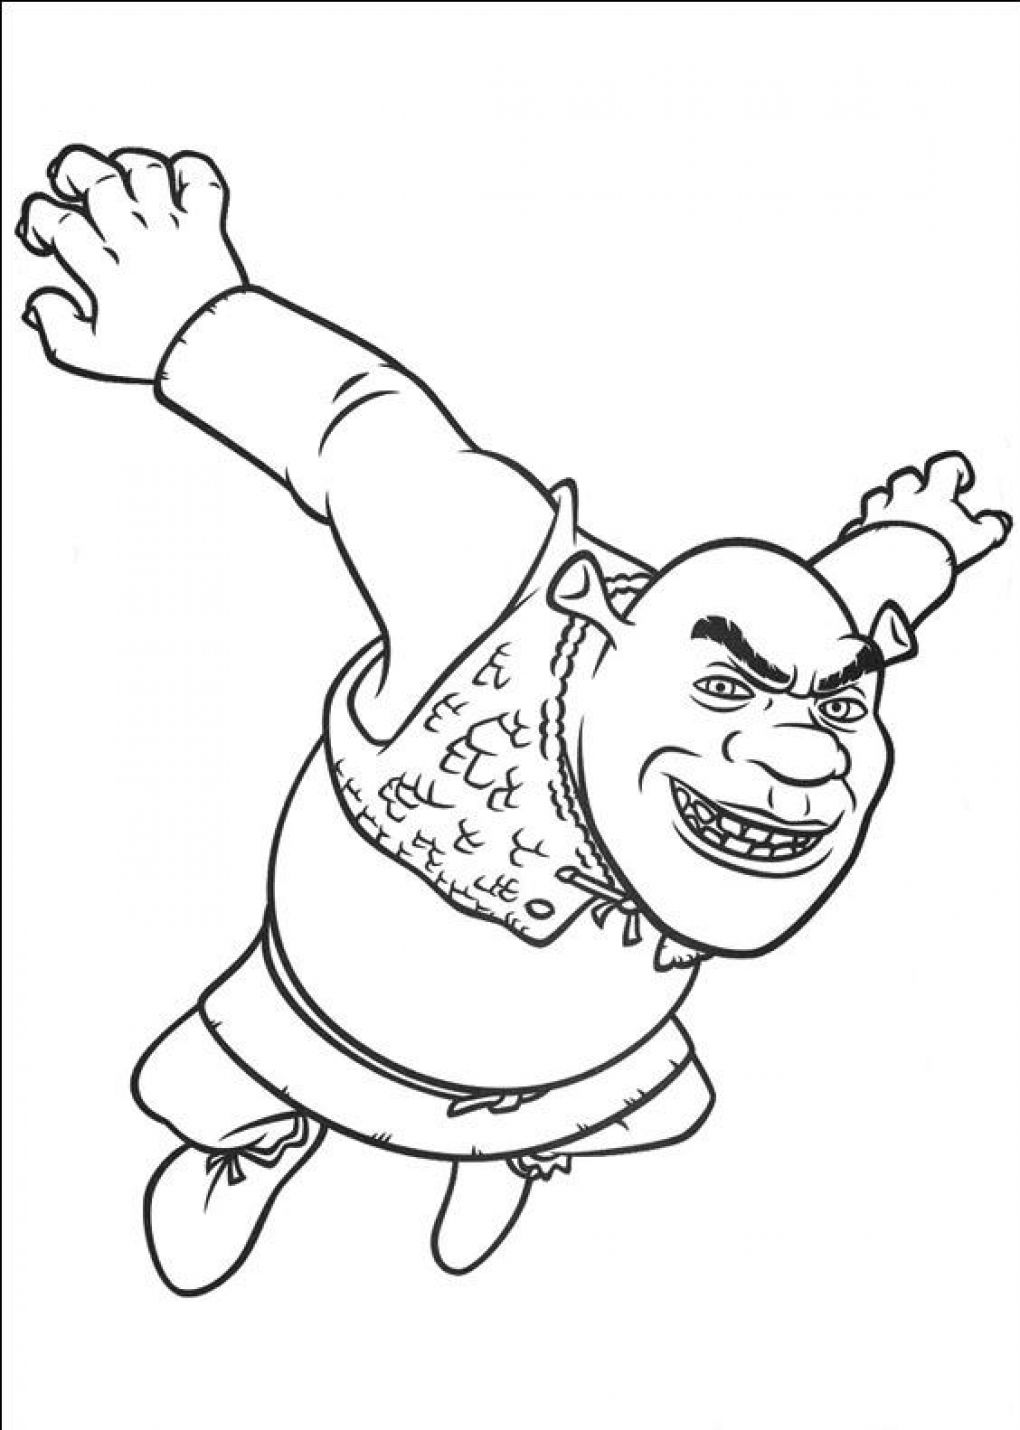 shrek coloring pages shrek coloring pages coloring pages to print pages coloring shrek